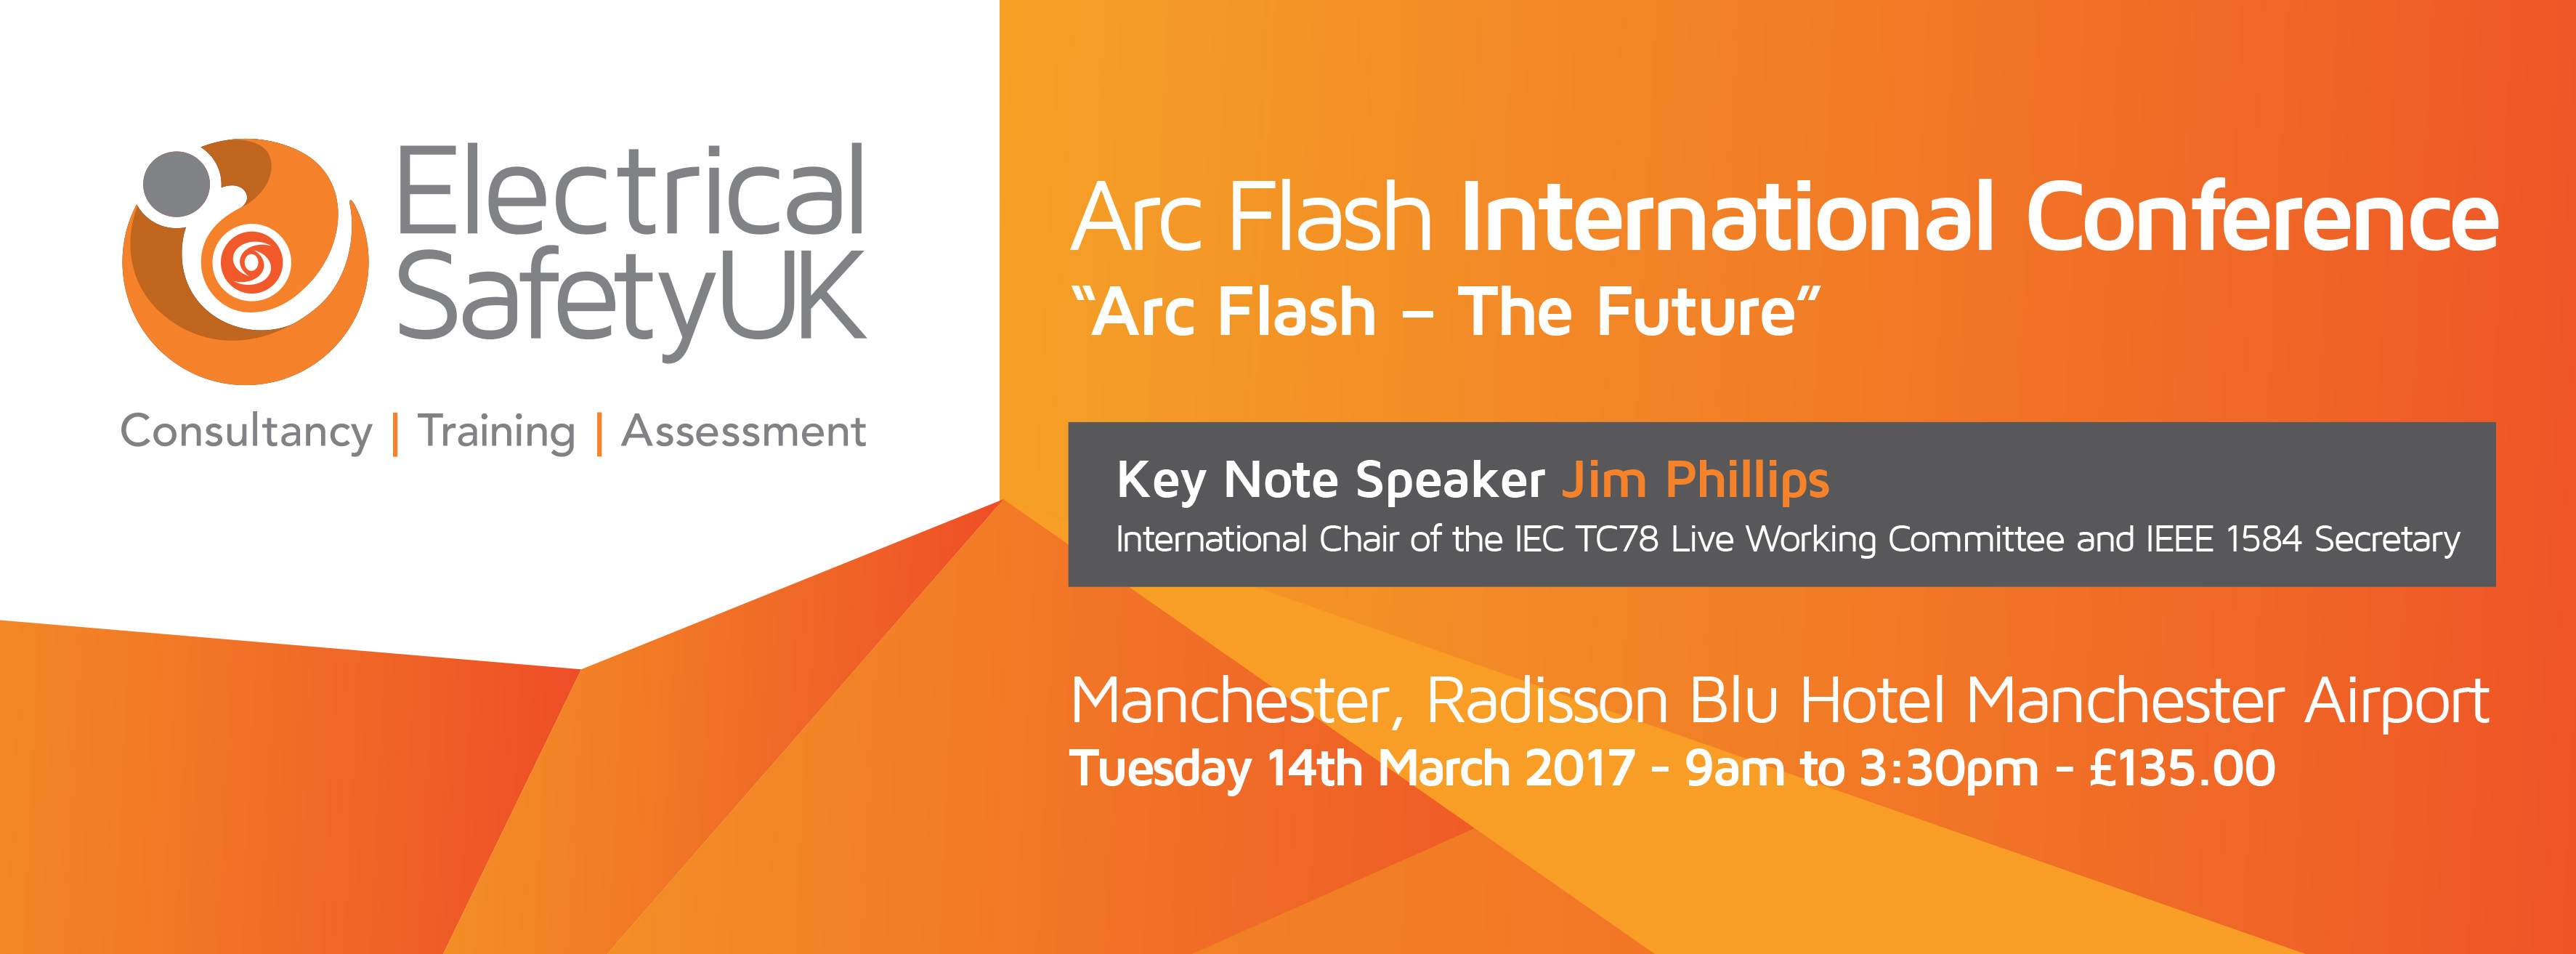 Electrical Safety UK Events